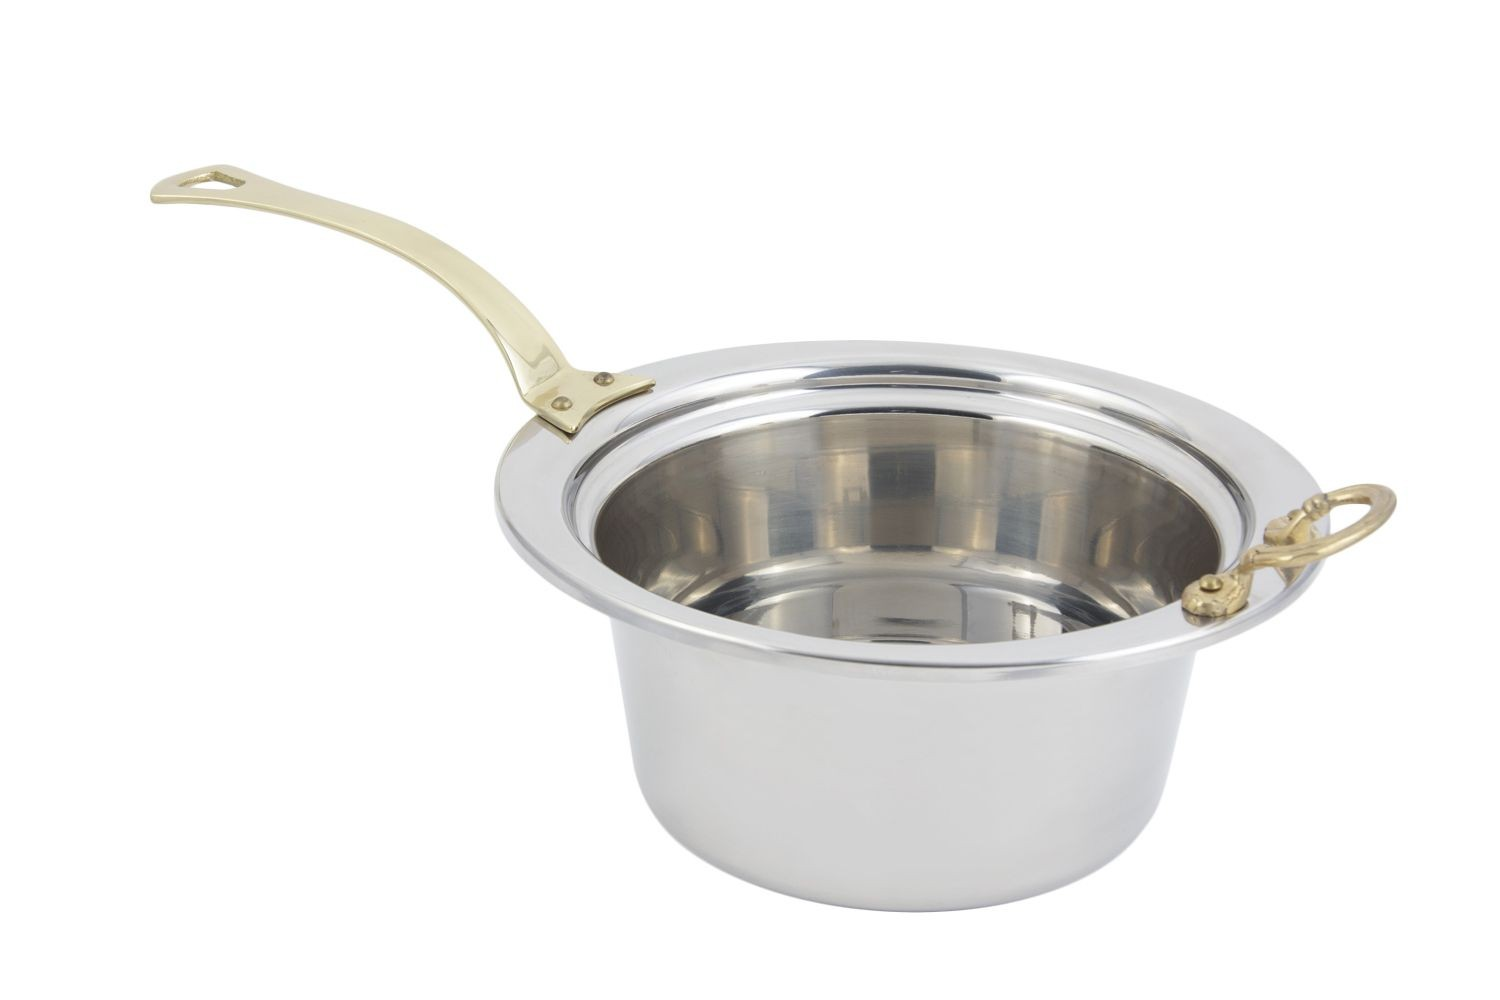 Bon Chef 5260HL Plain Design Casserole Dish with Long Brass Handle, 5 Qt.